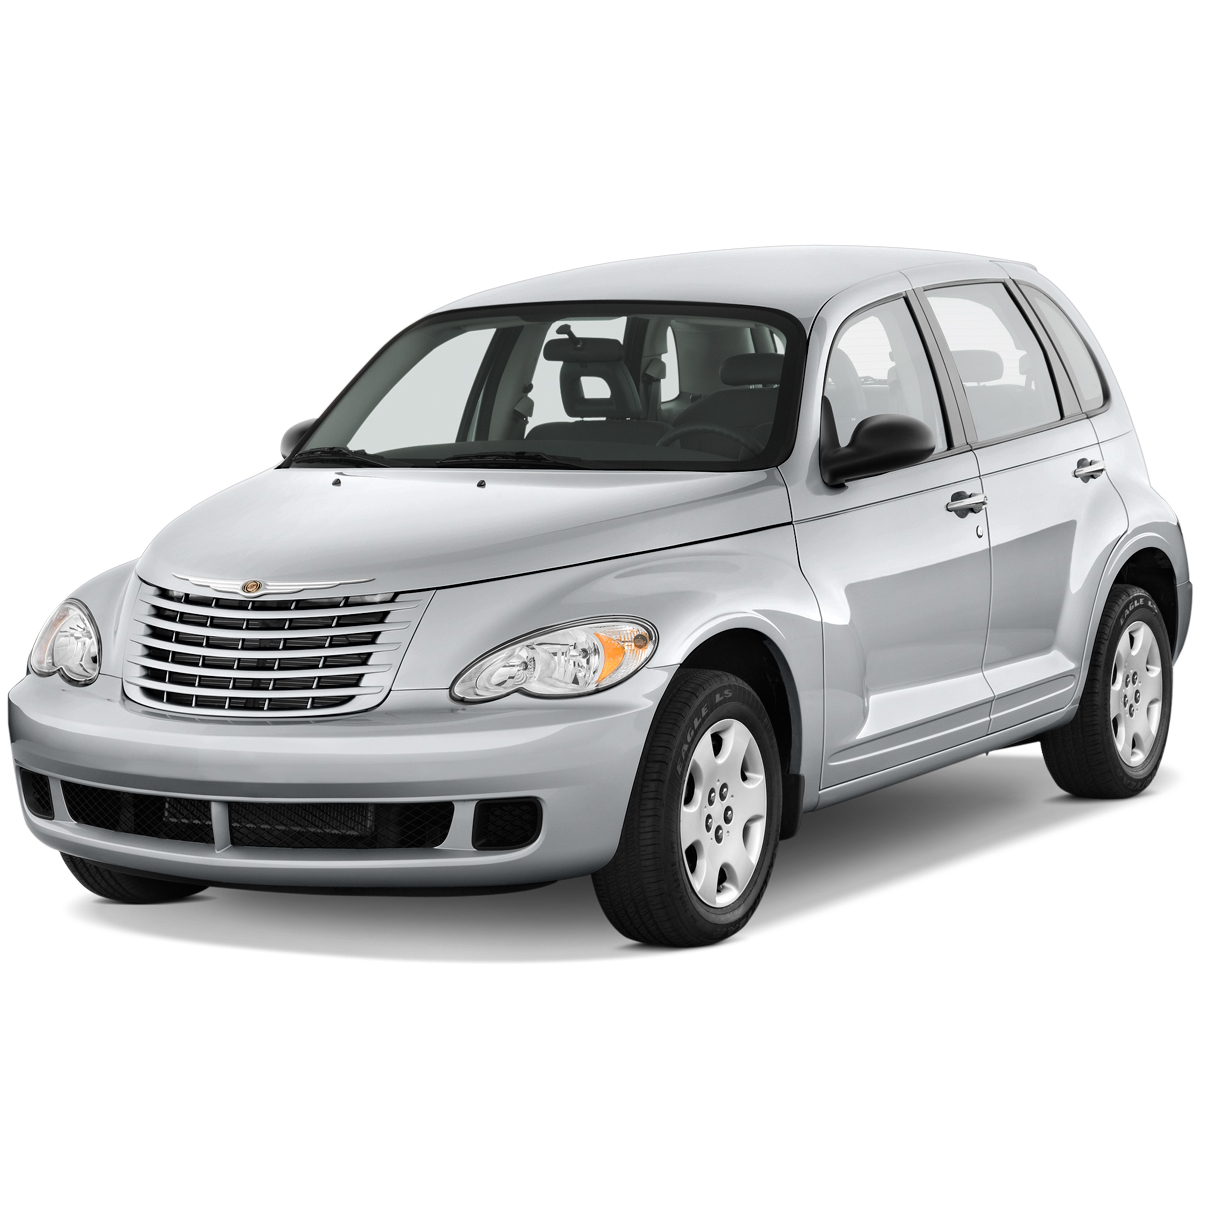 Chrysler PT Cruiser 2000 - 2010